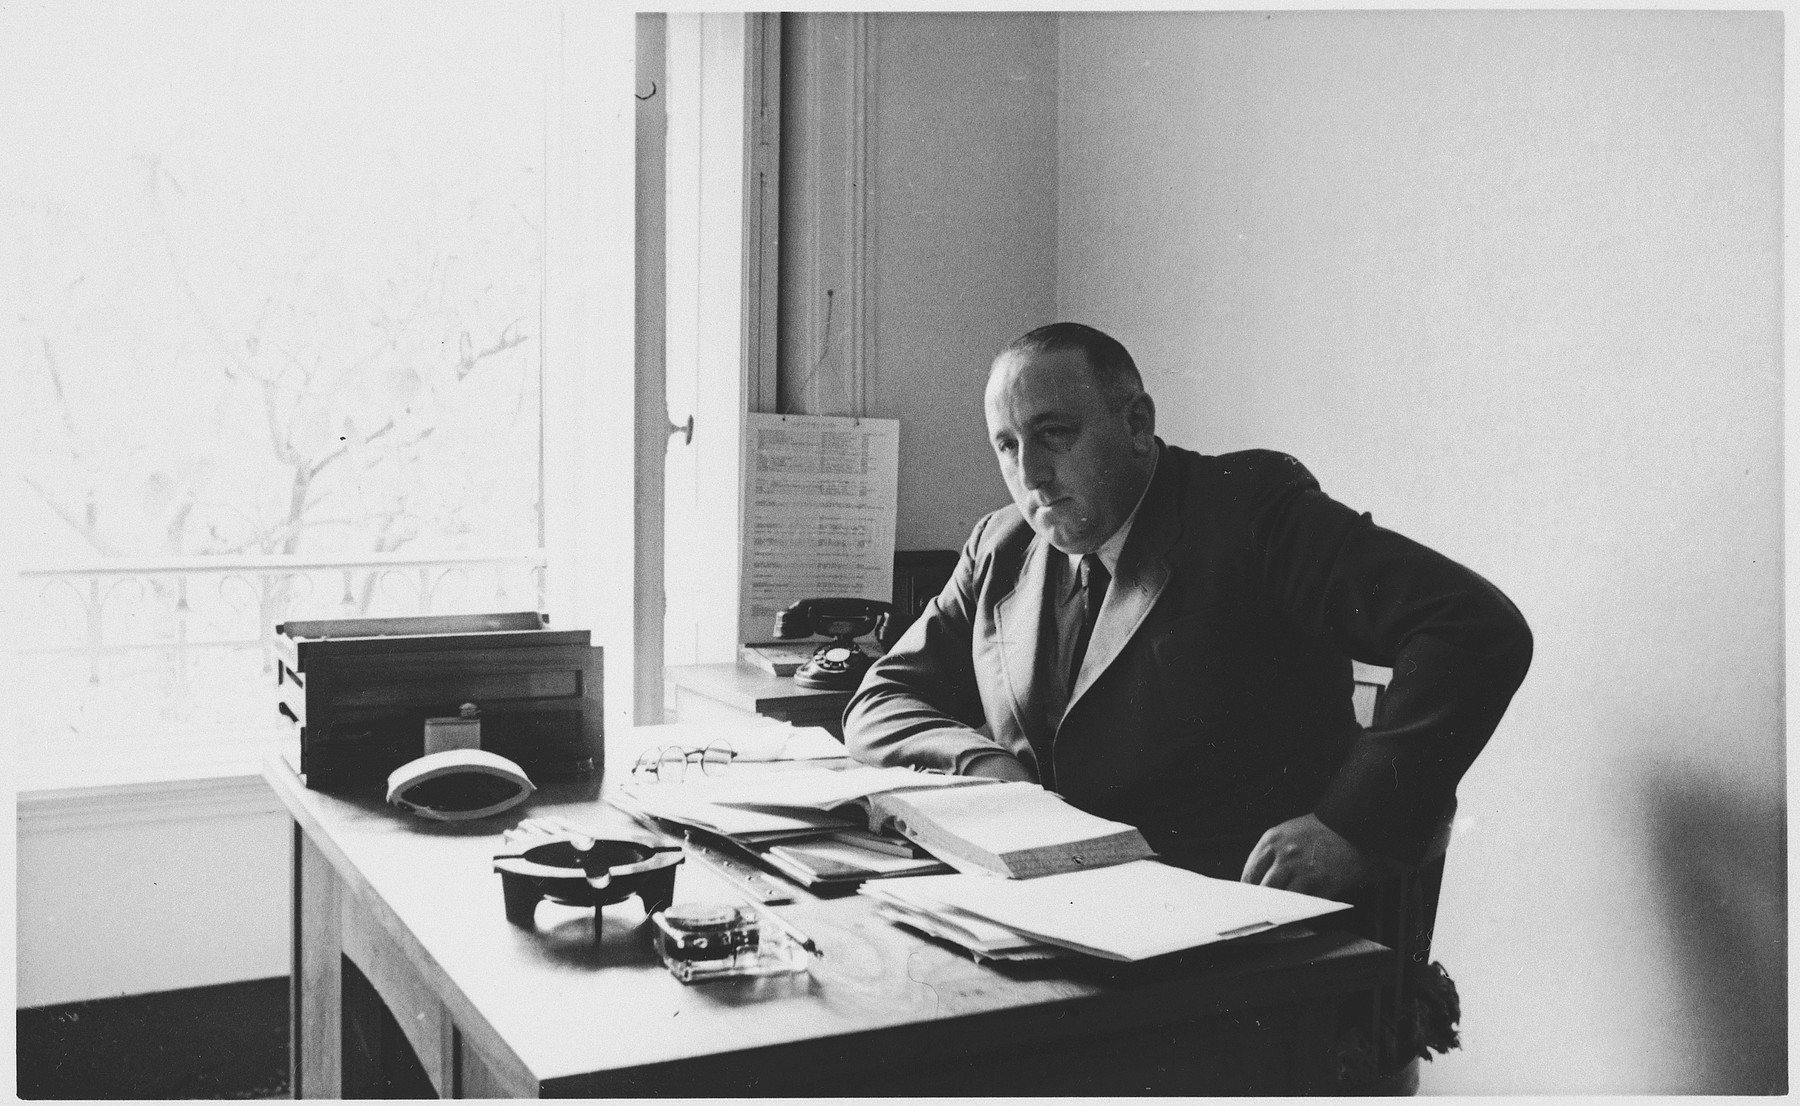 Albert Nussbaum, Comissioner of Emigration for Luxembourg and Director of Transmigration for the American Joint Distribution Committee, poses in his office in Lisbon.